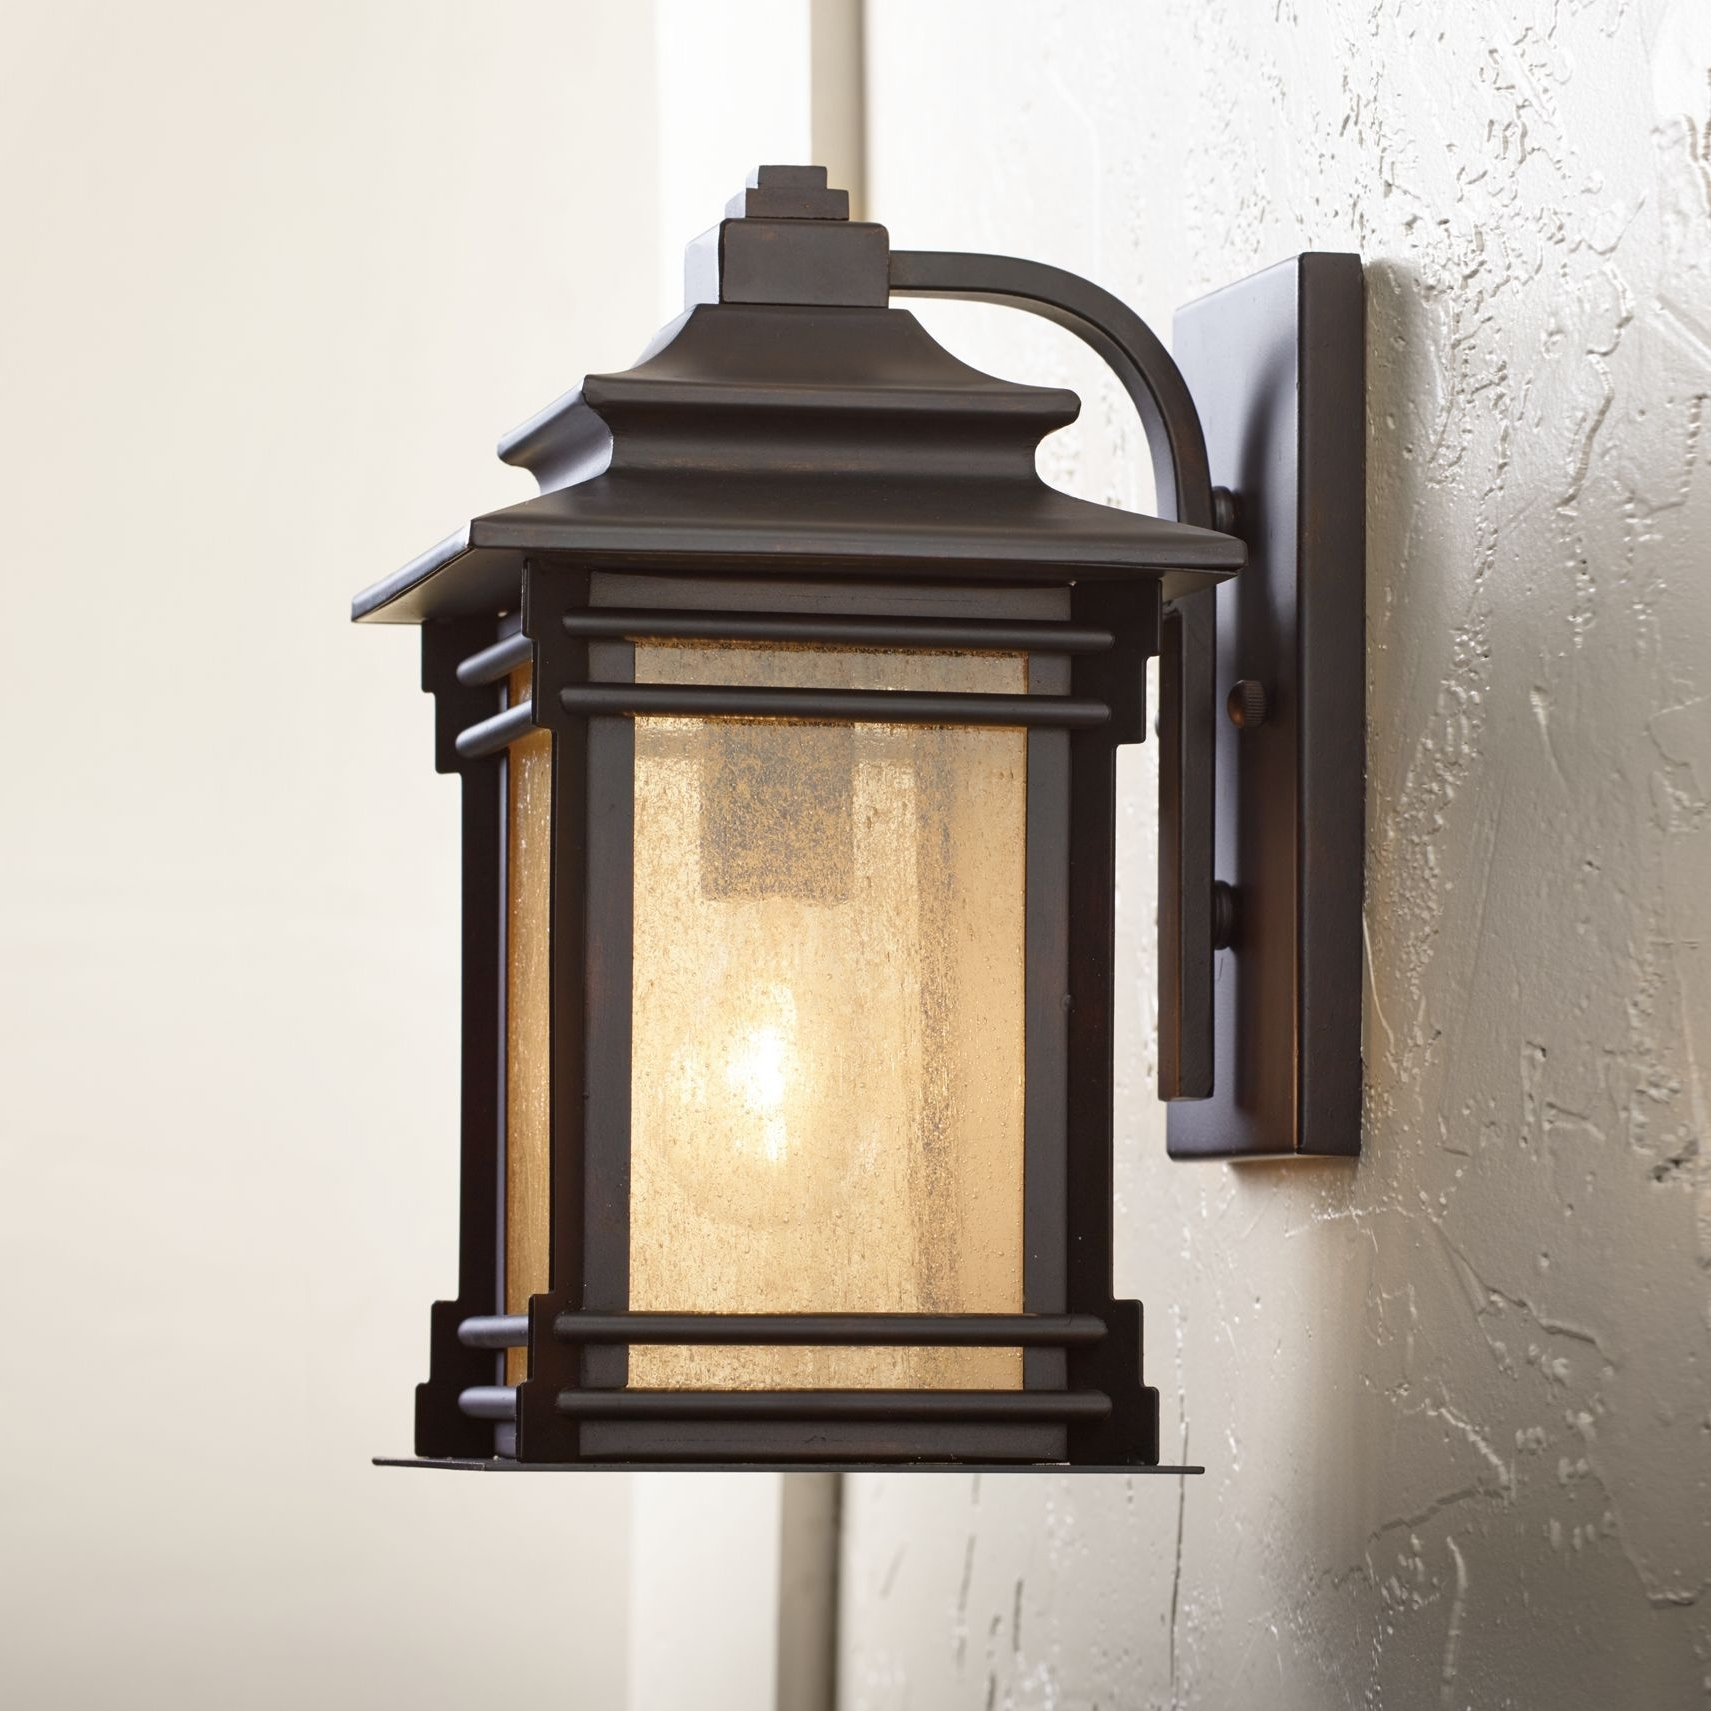 2019 Outdoor: Lowes Motion Detector Outdoor Lights Lowes Outdoor Flood Pertaining To Outdoor Lanterns At Lowes (View 13 of 20)